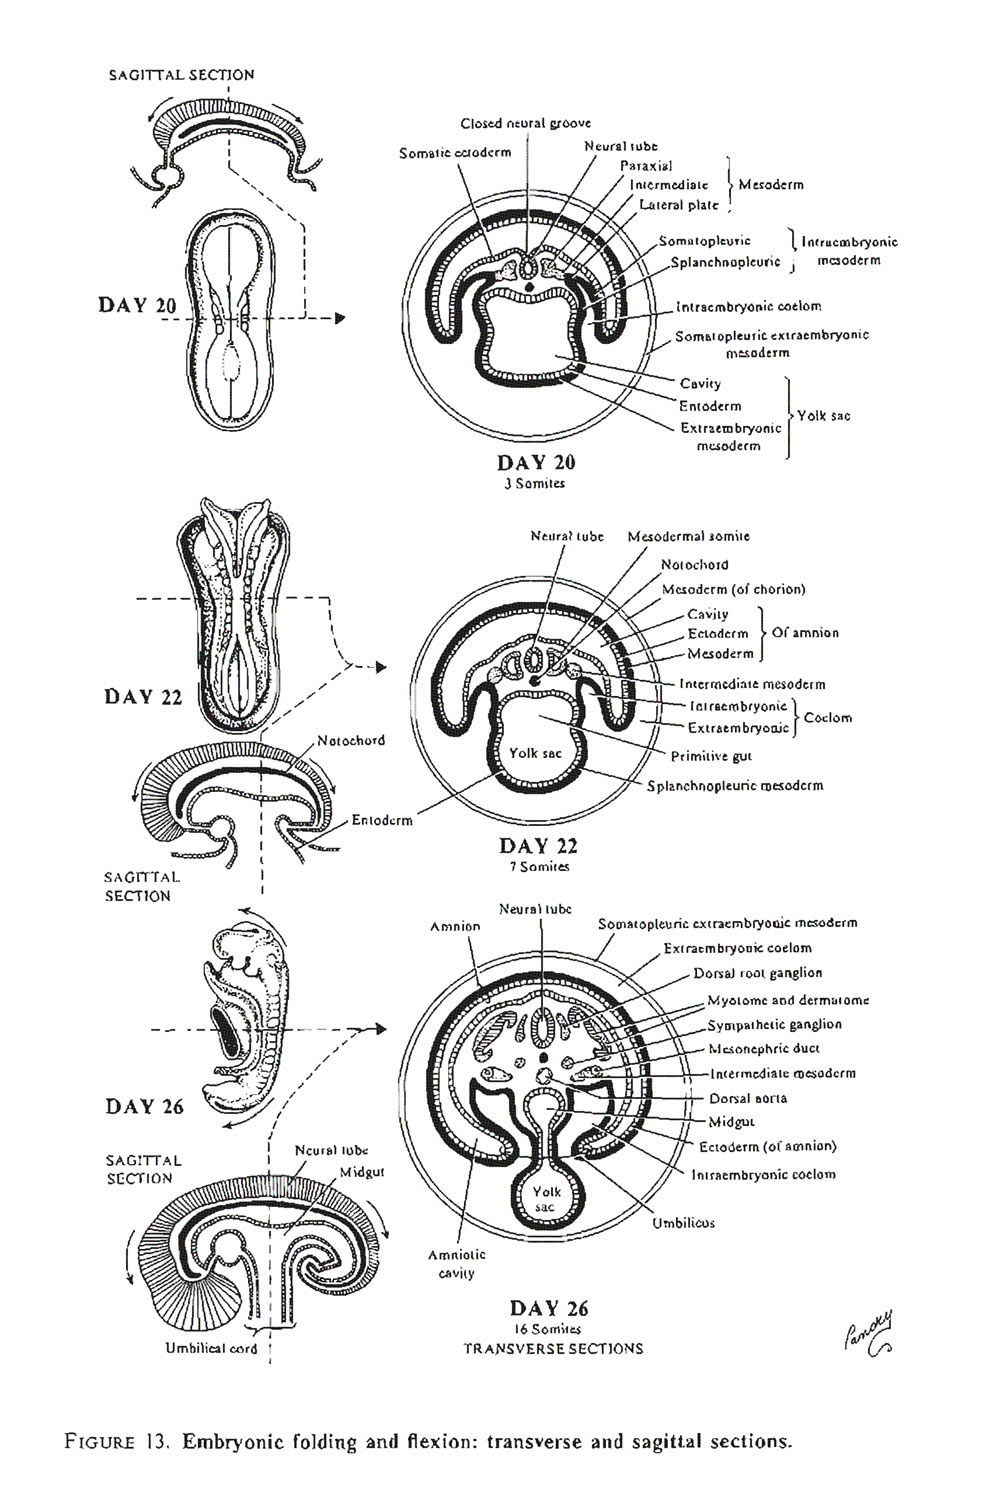 embryonic folding and  flexion of the embryo: image #2